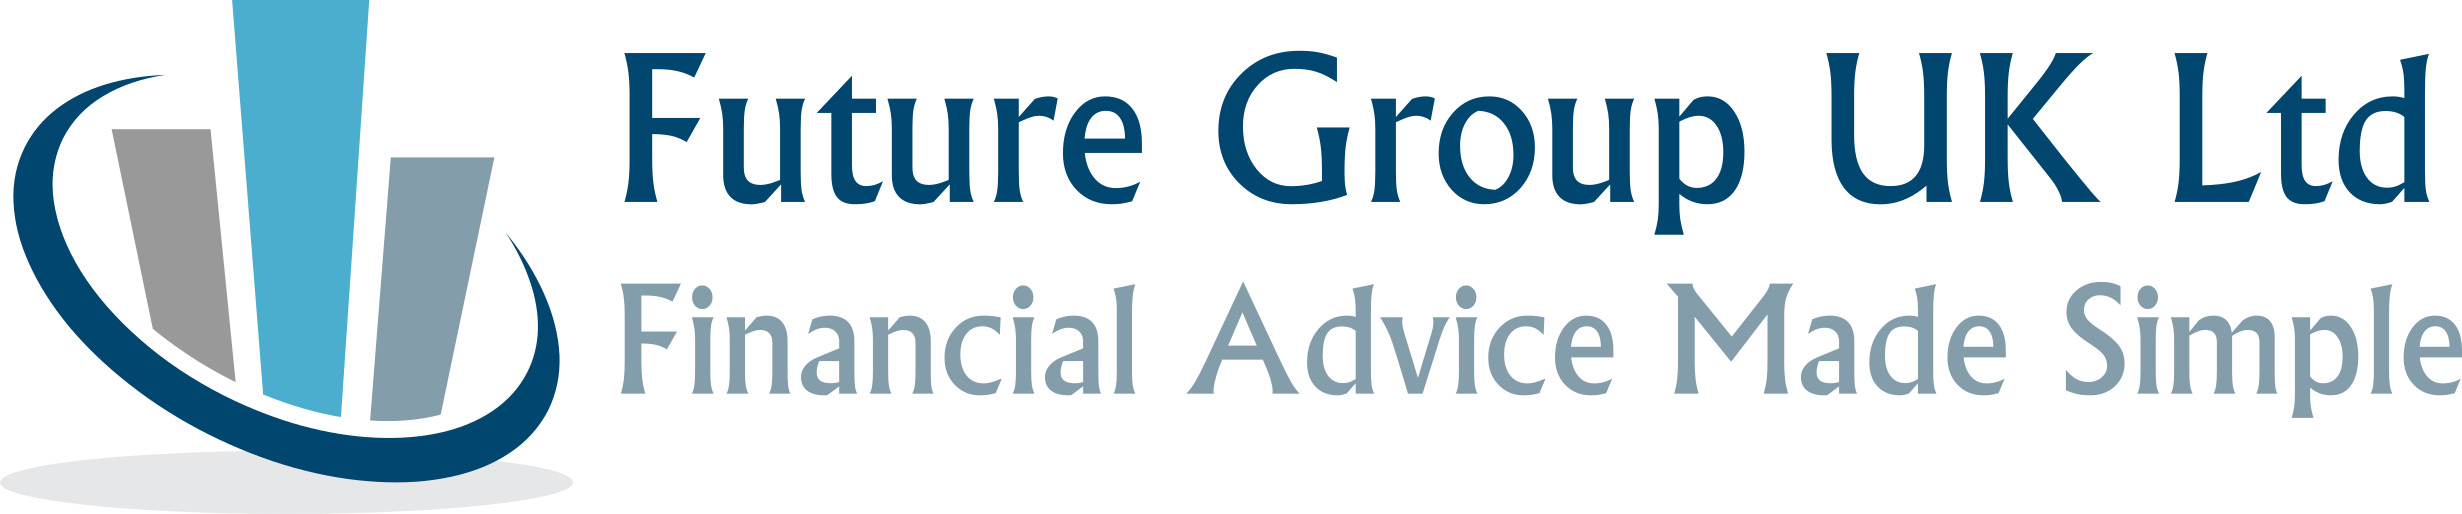 Future Group UK Logo